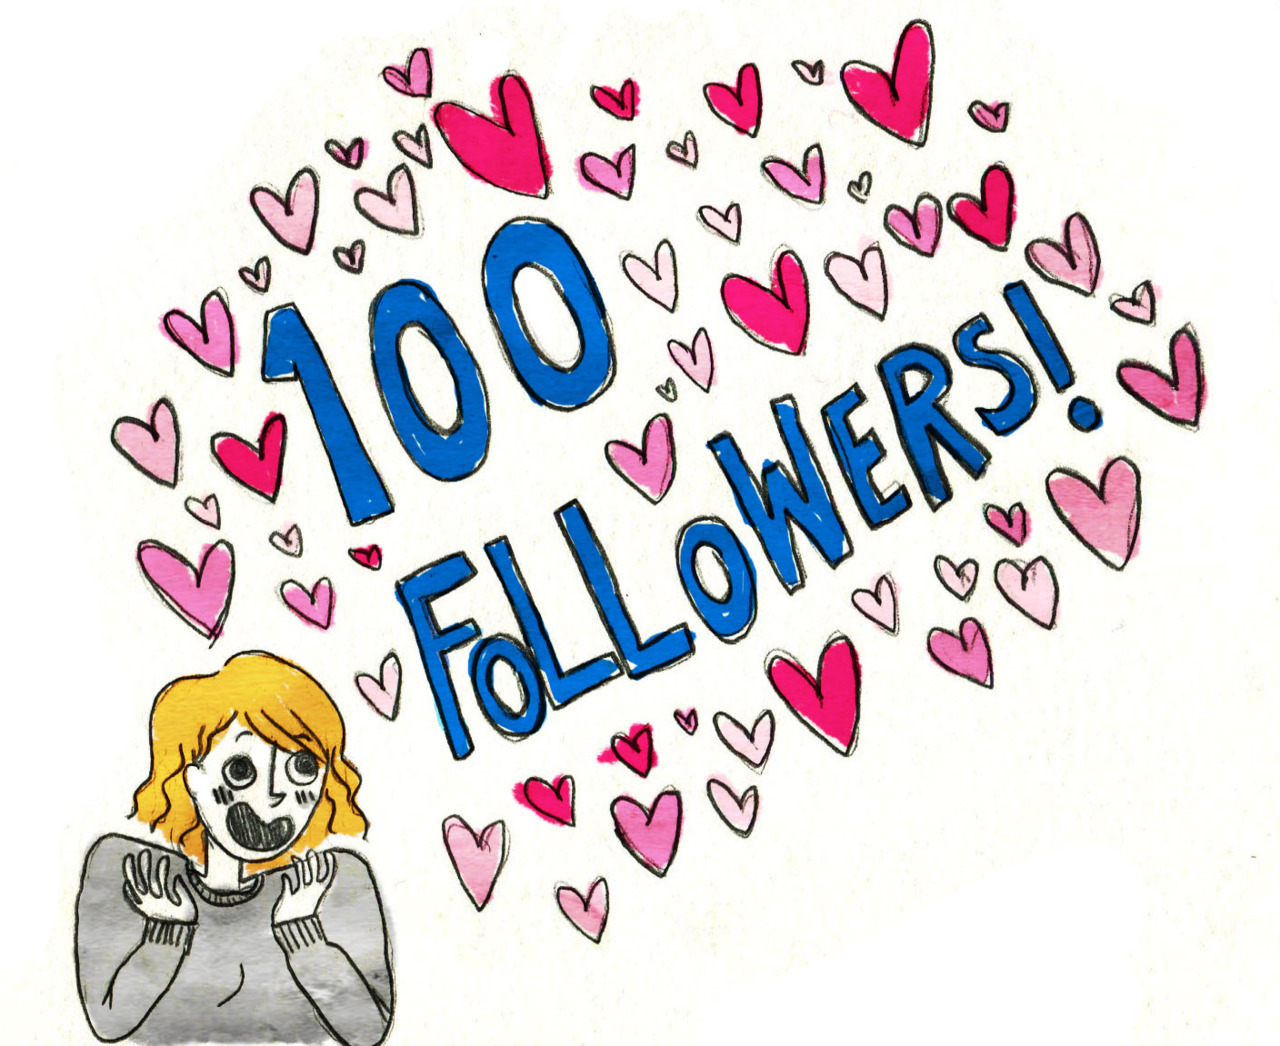 OH WOW GUYS. So I reached 100 followers yesterday, and it's really exciting! Thank you everyone who has decided to join my silly drawing adventure here. Even you spambots. I love you all!